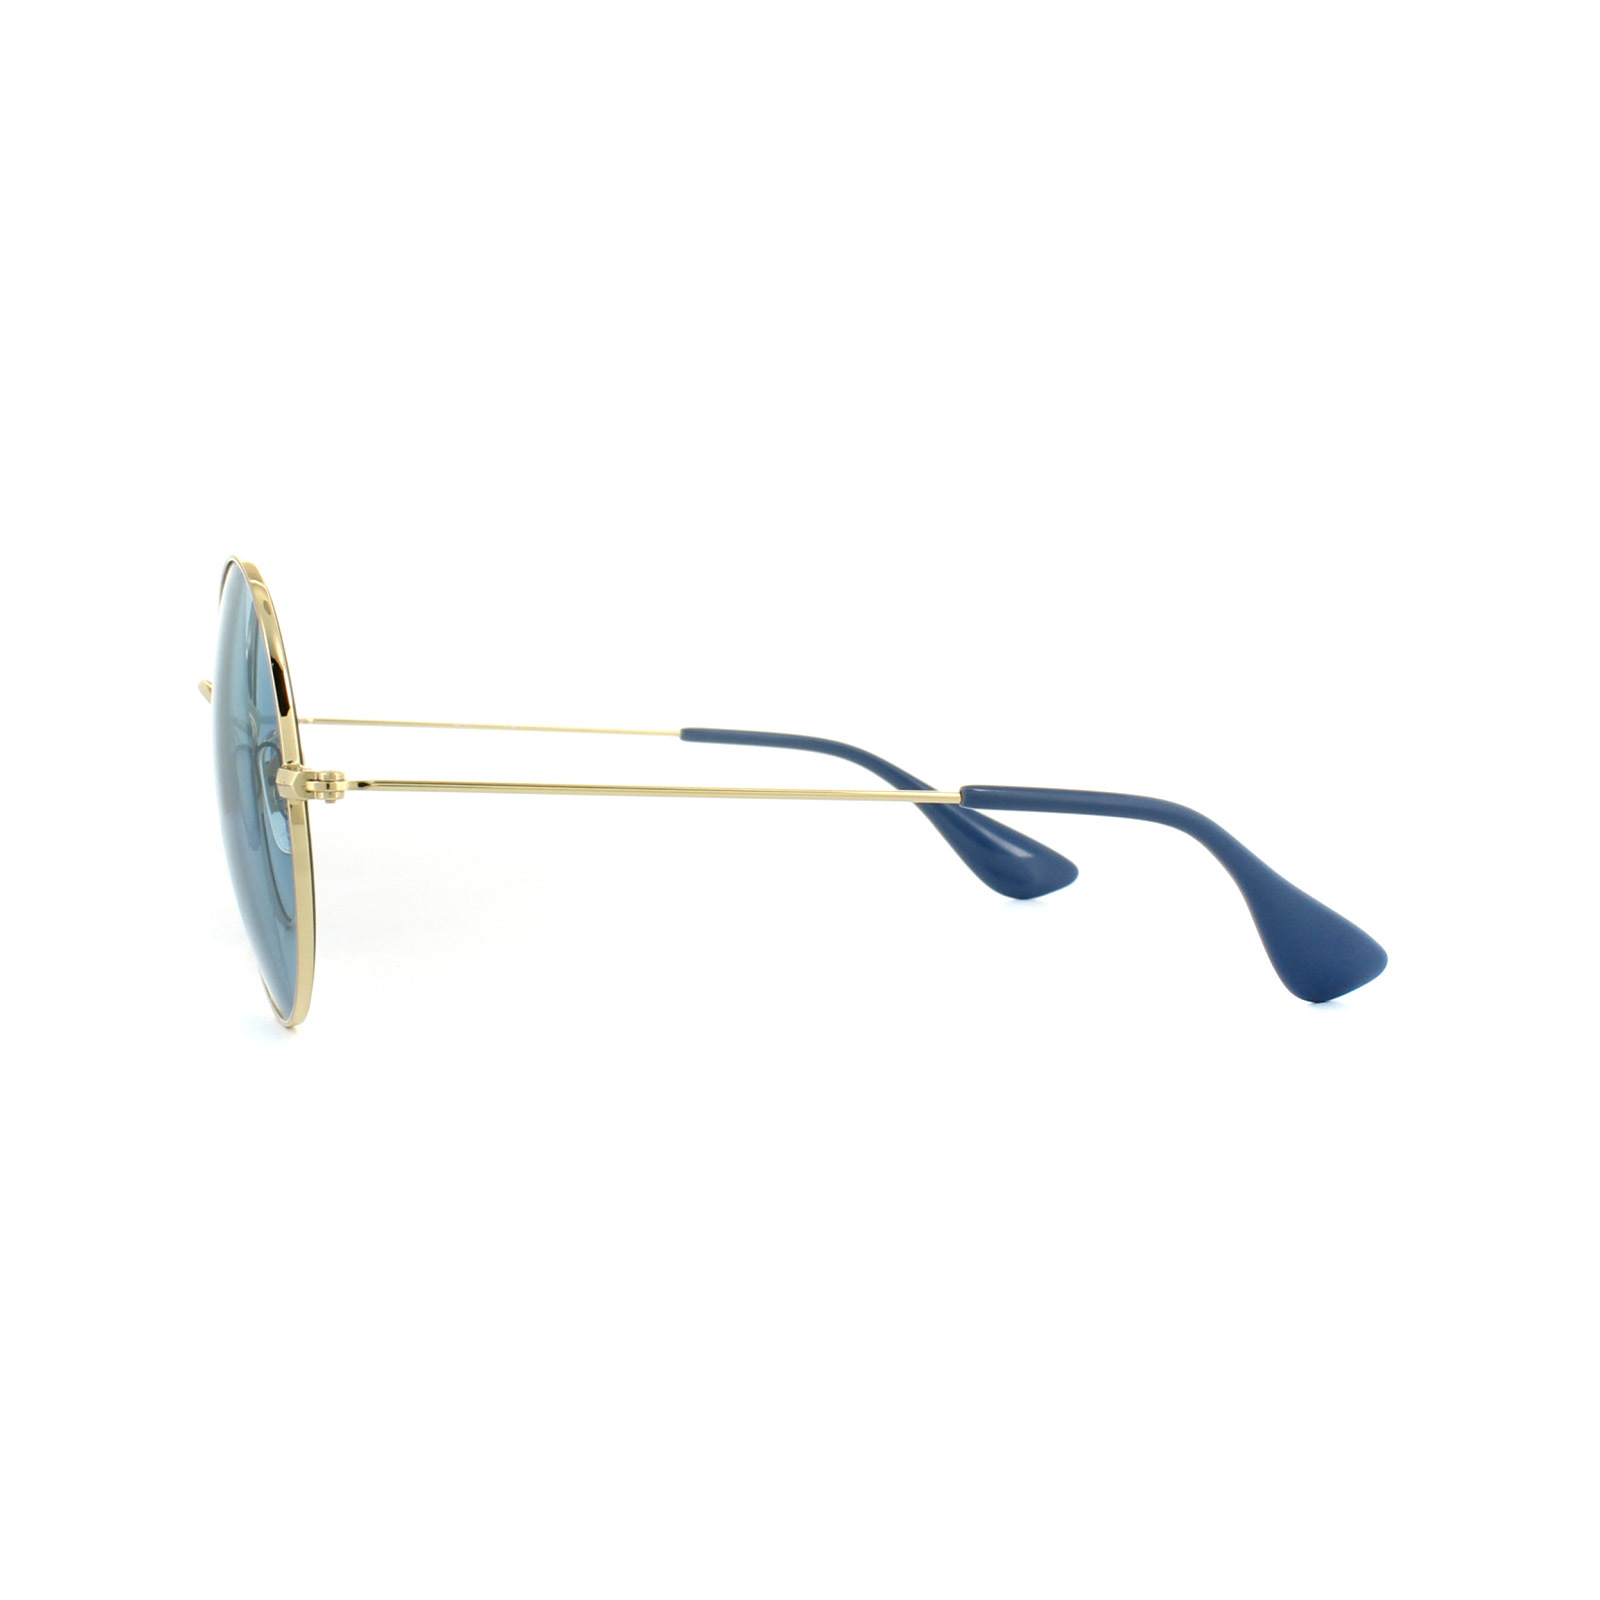 7dc93efaf56 Sentinel Ray-Ban Sunglasses Ja-Jo 3592 001 F7 Gold Light Blue